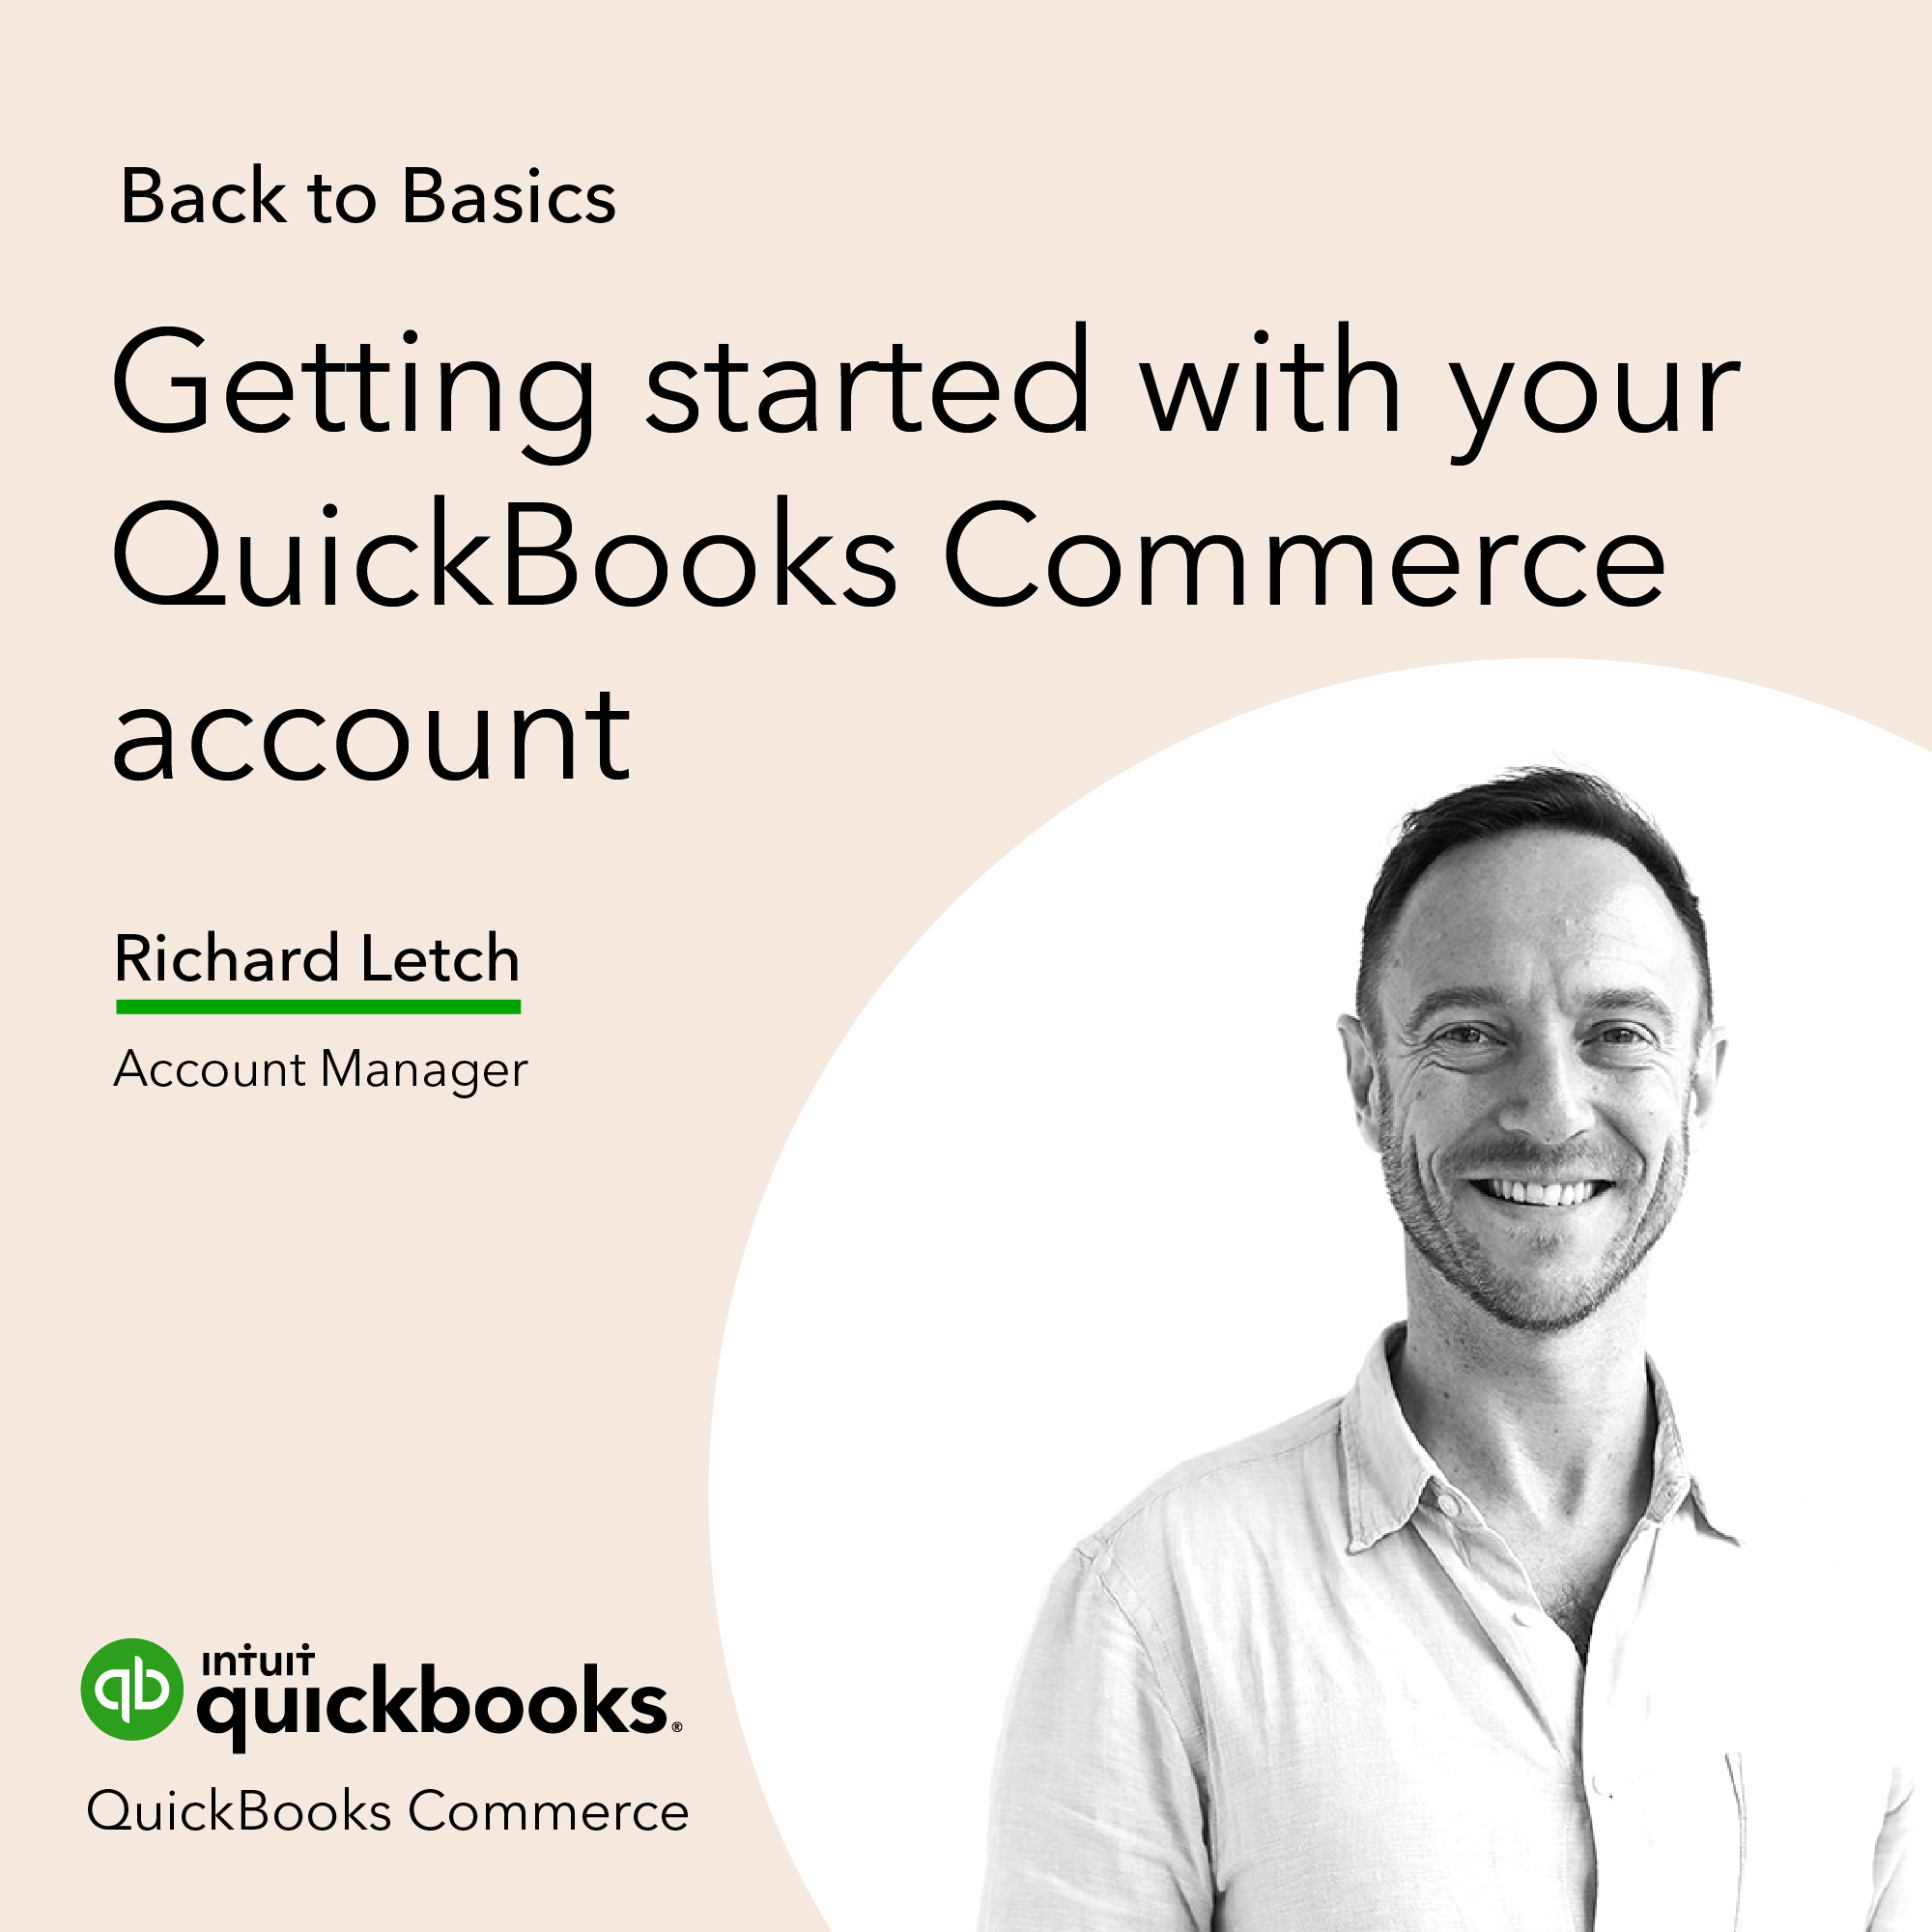 Getting started with your QuickBooks Commerce account